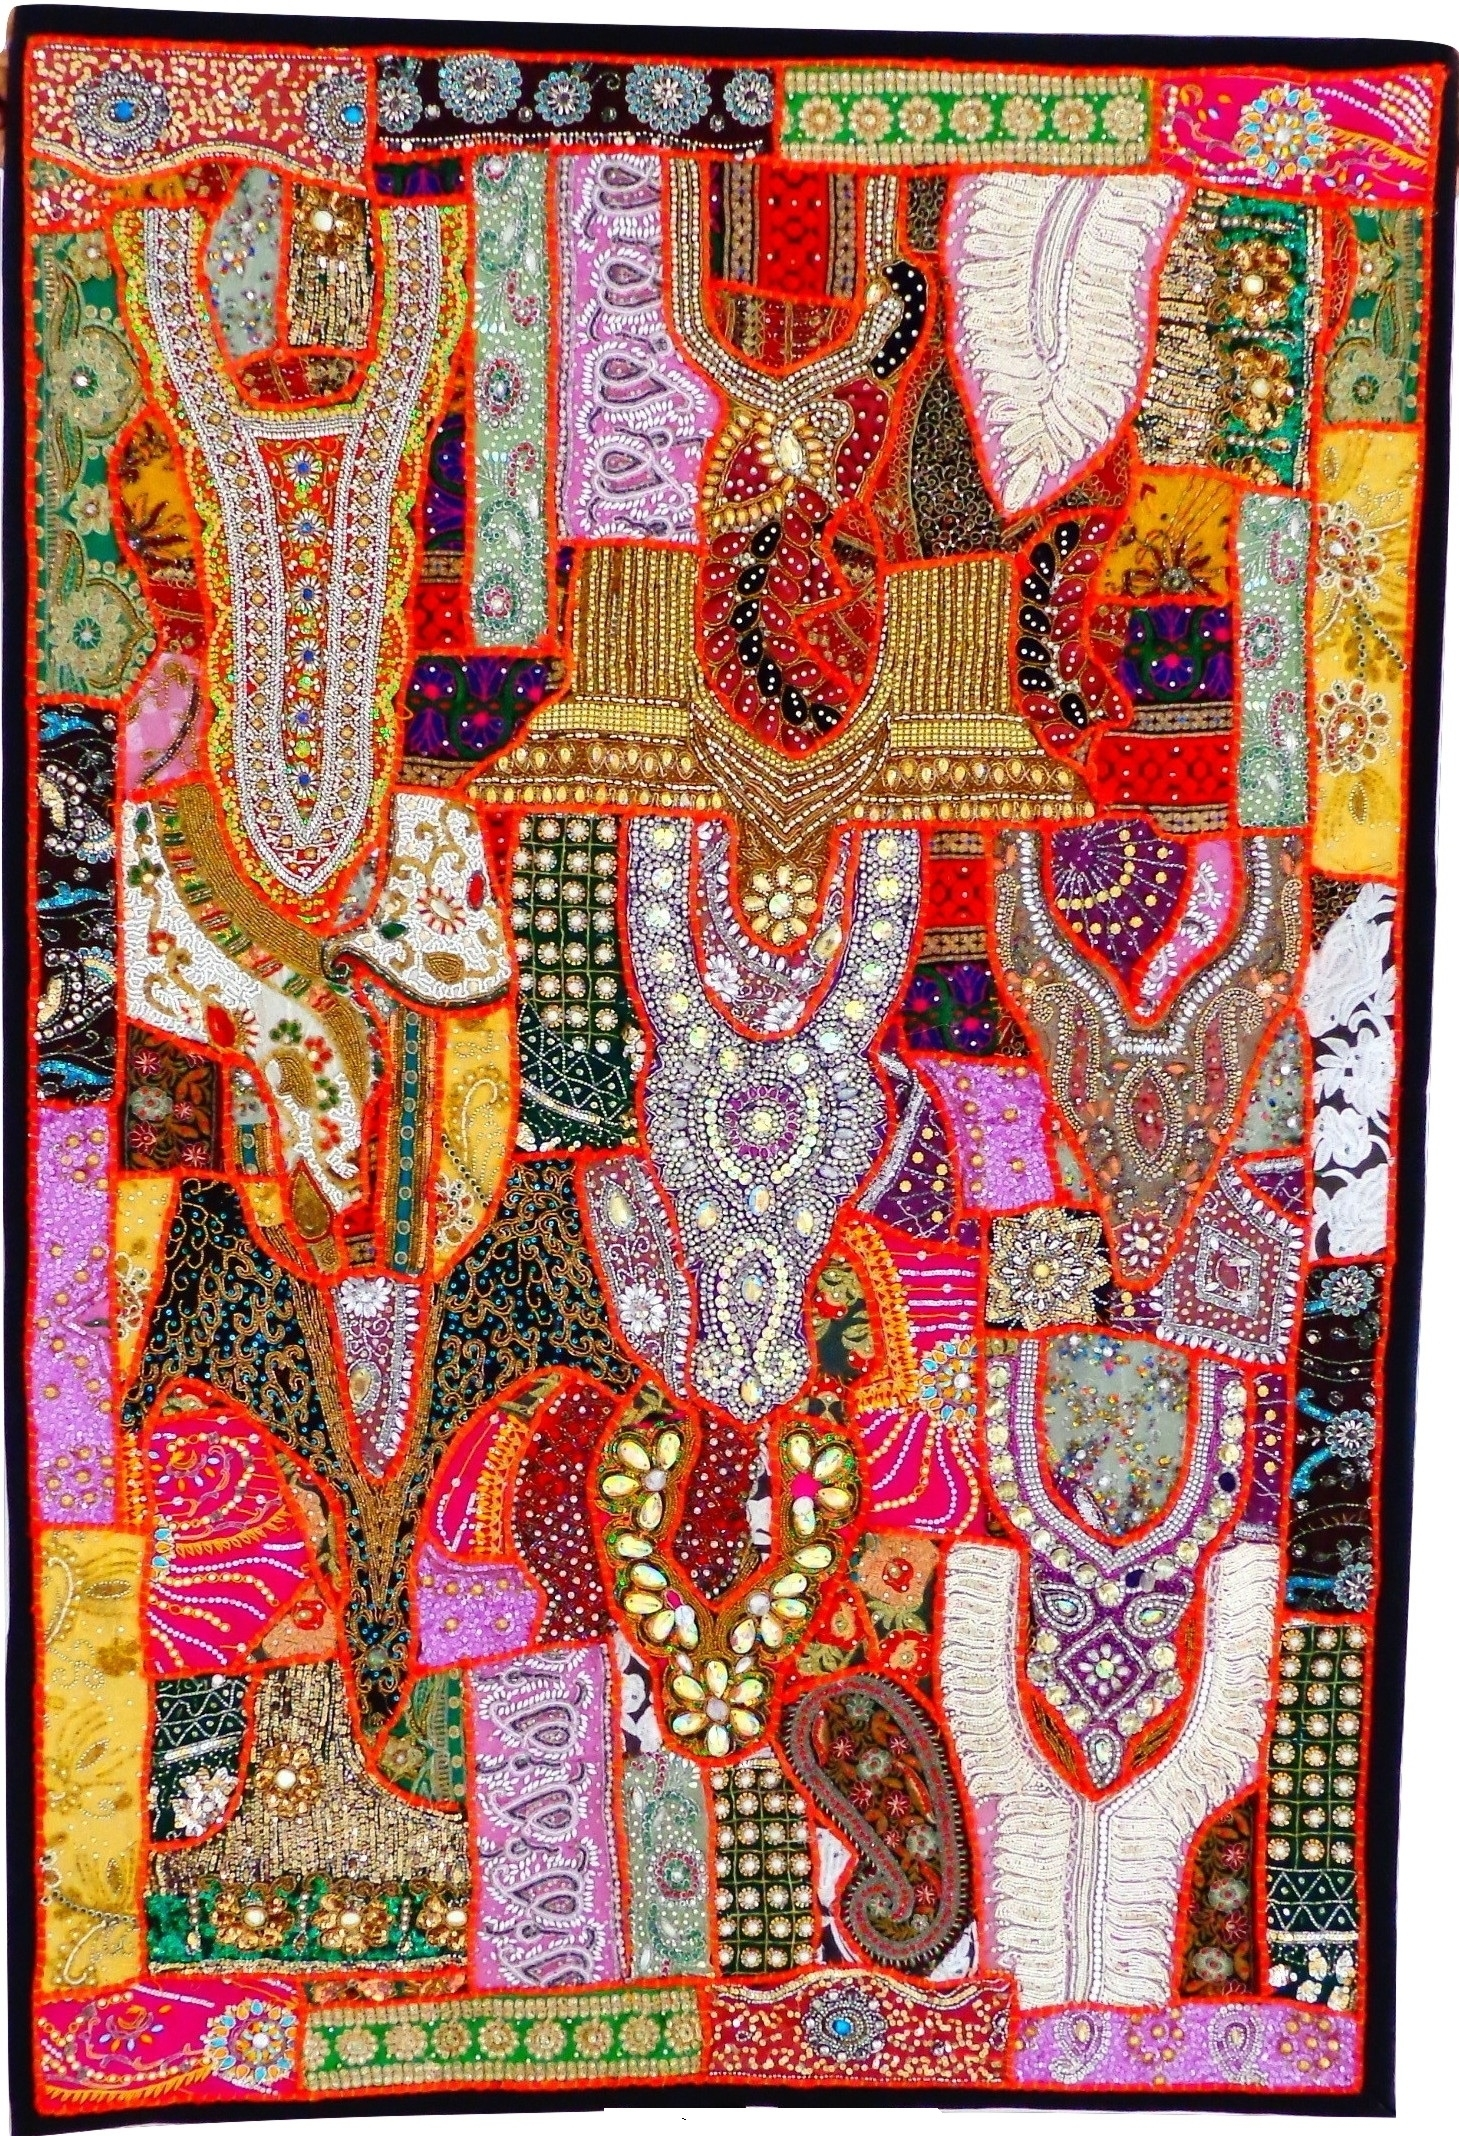 Antique Banjara Patchwork Tapestry Indian Gujarati Home Decor Wall With Most Up To Date Handmade Textile Wall Art (View 9 of 15)